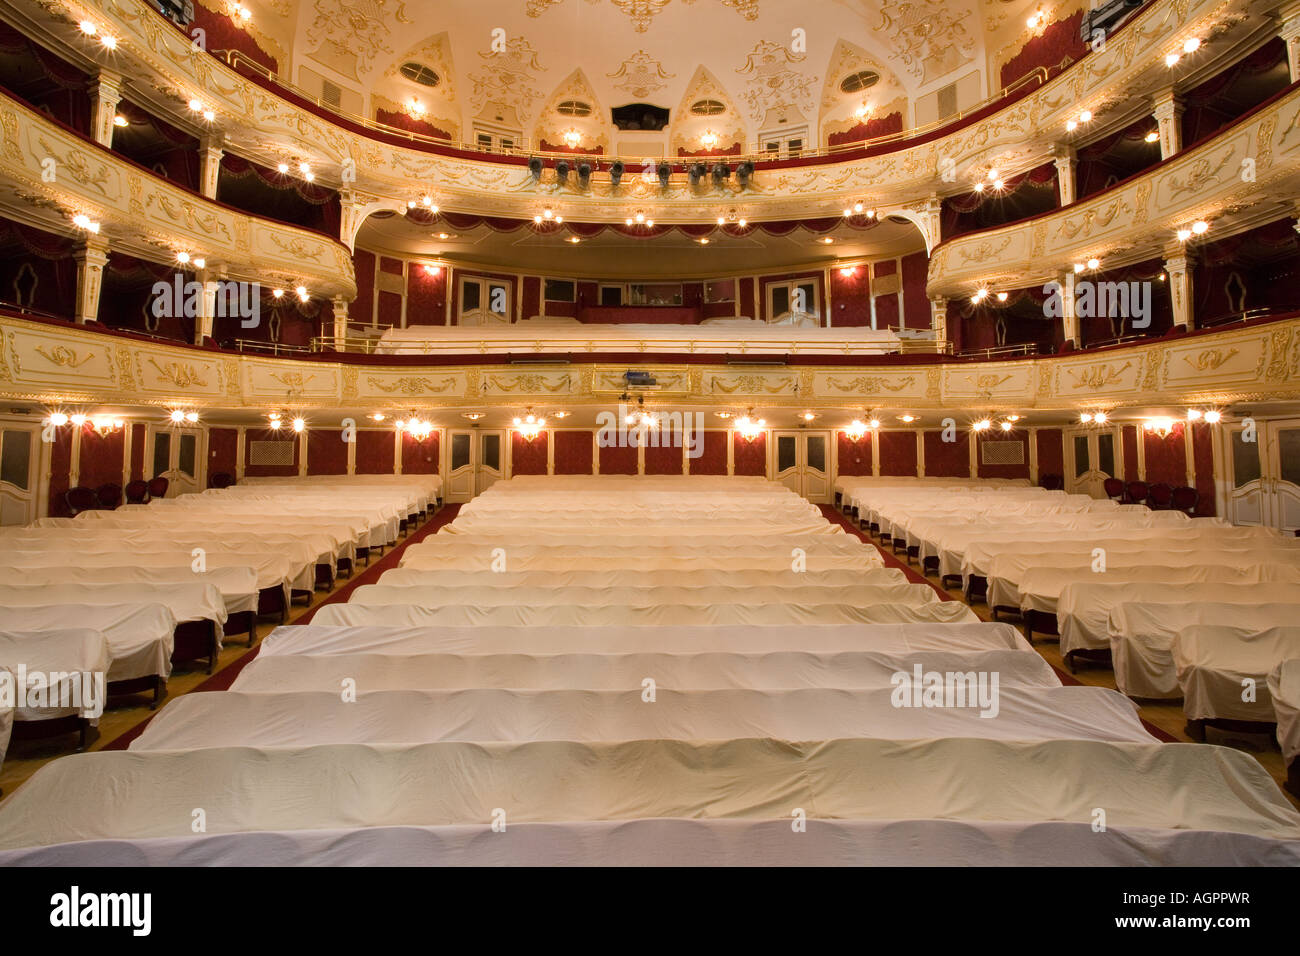 empty theater inside - Stock Image